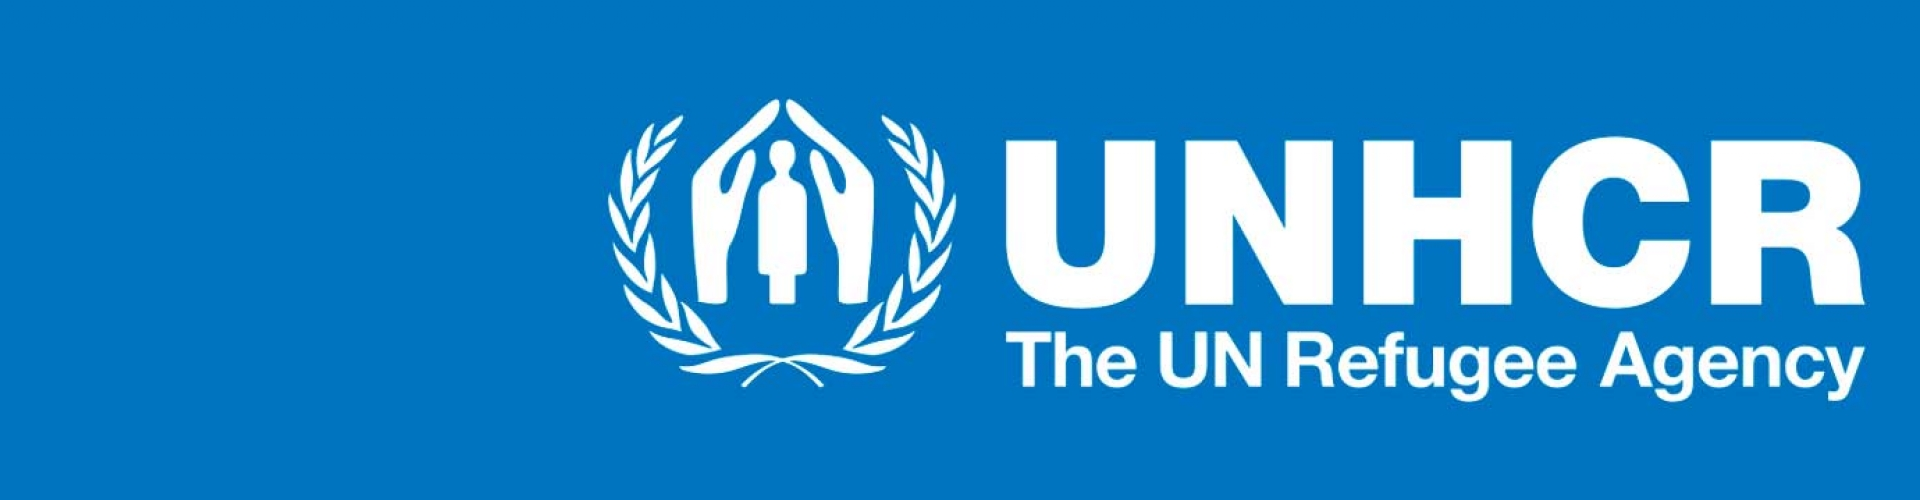 News comment: UNHCR's Grandi expresses shock following massacre of innocent worshipers in New Zealand